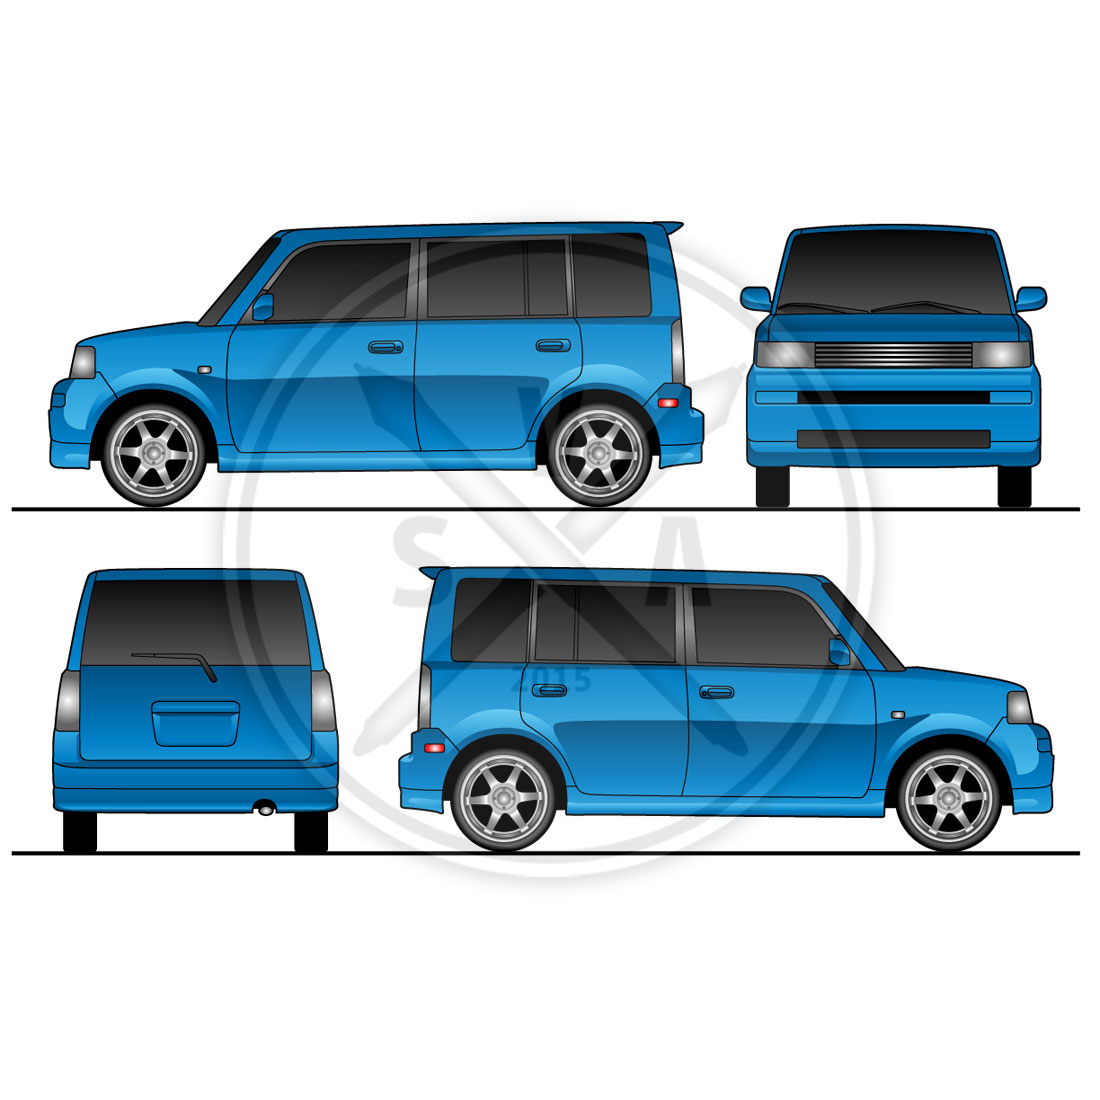 Scion XB Wrap Design Template